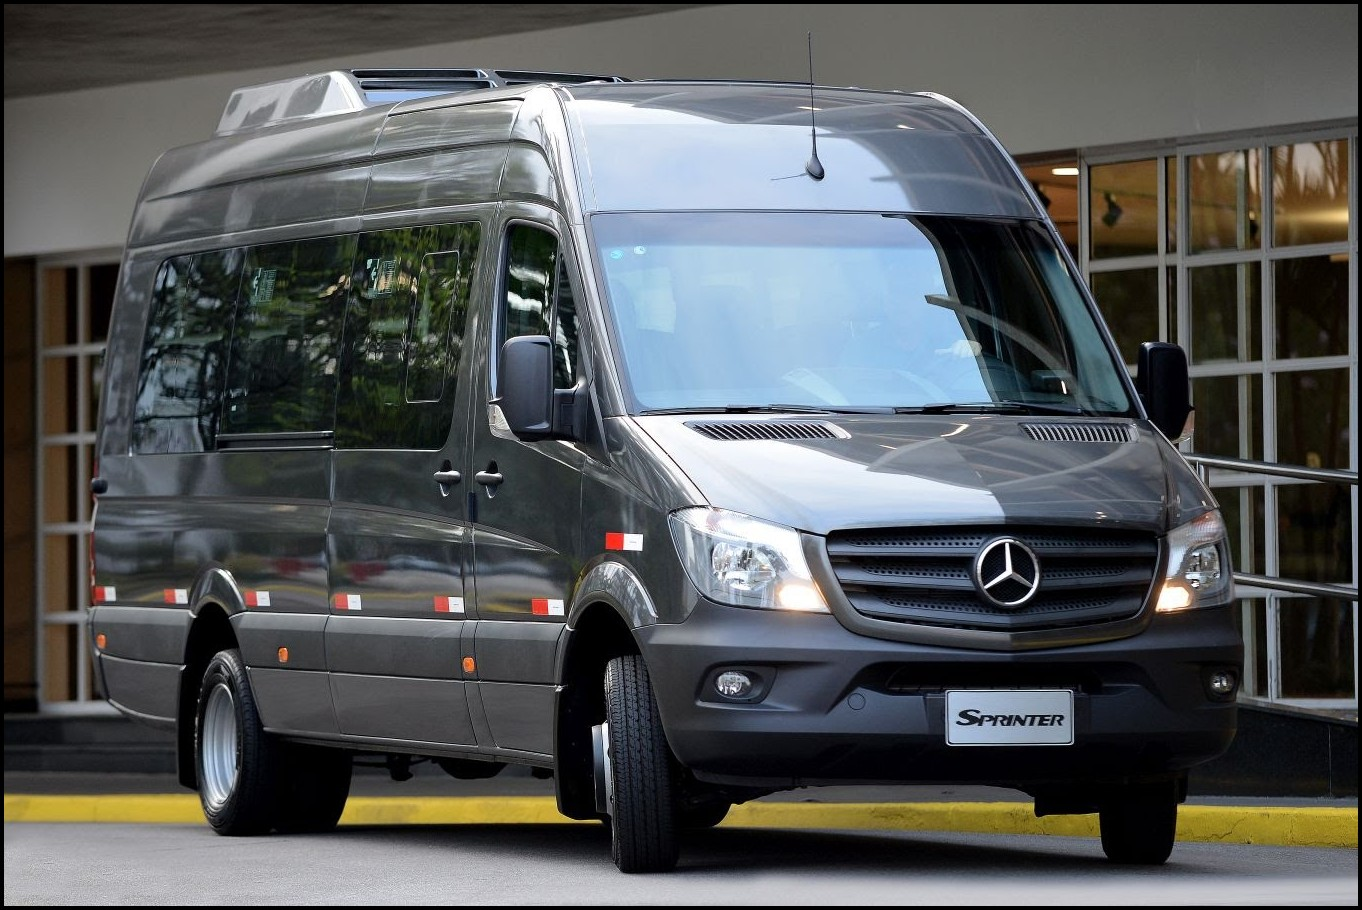 2018 Mercedes Sprinter RV Passenger Van Reviews